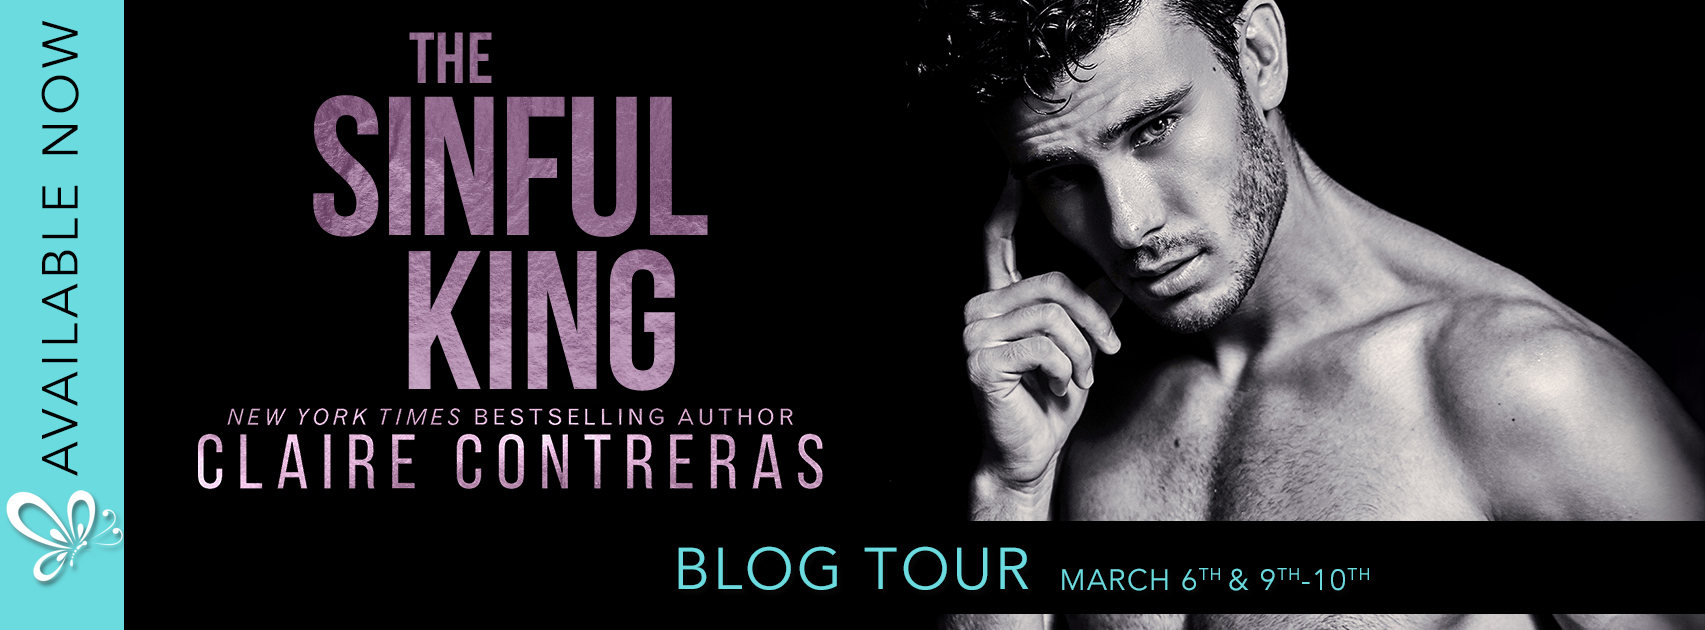 [Blog Tour] [Portia's Review]The Sinful King by Claire Contreras (Naughty Royals #1)